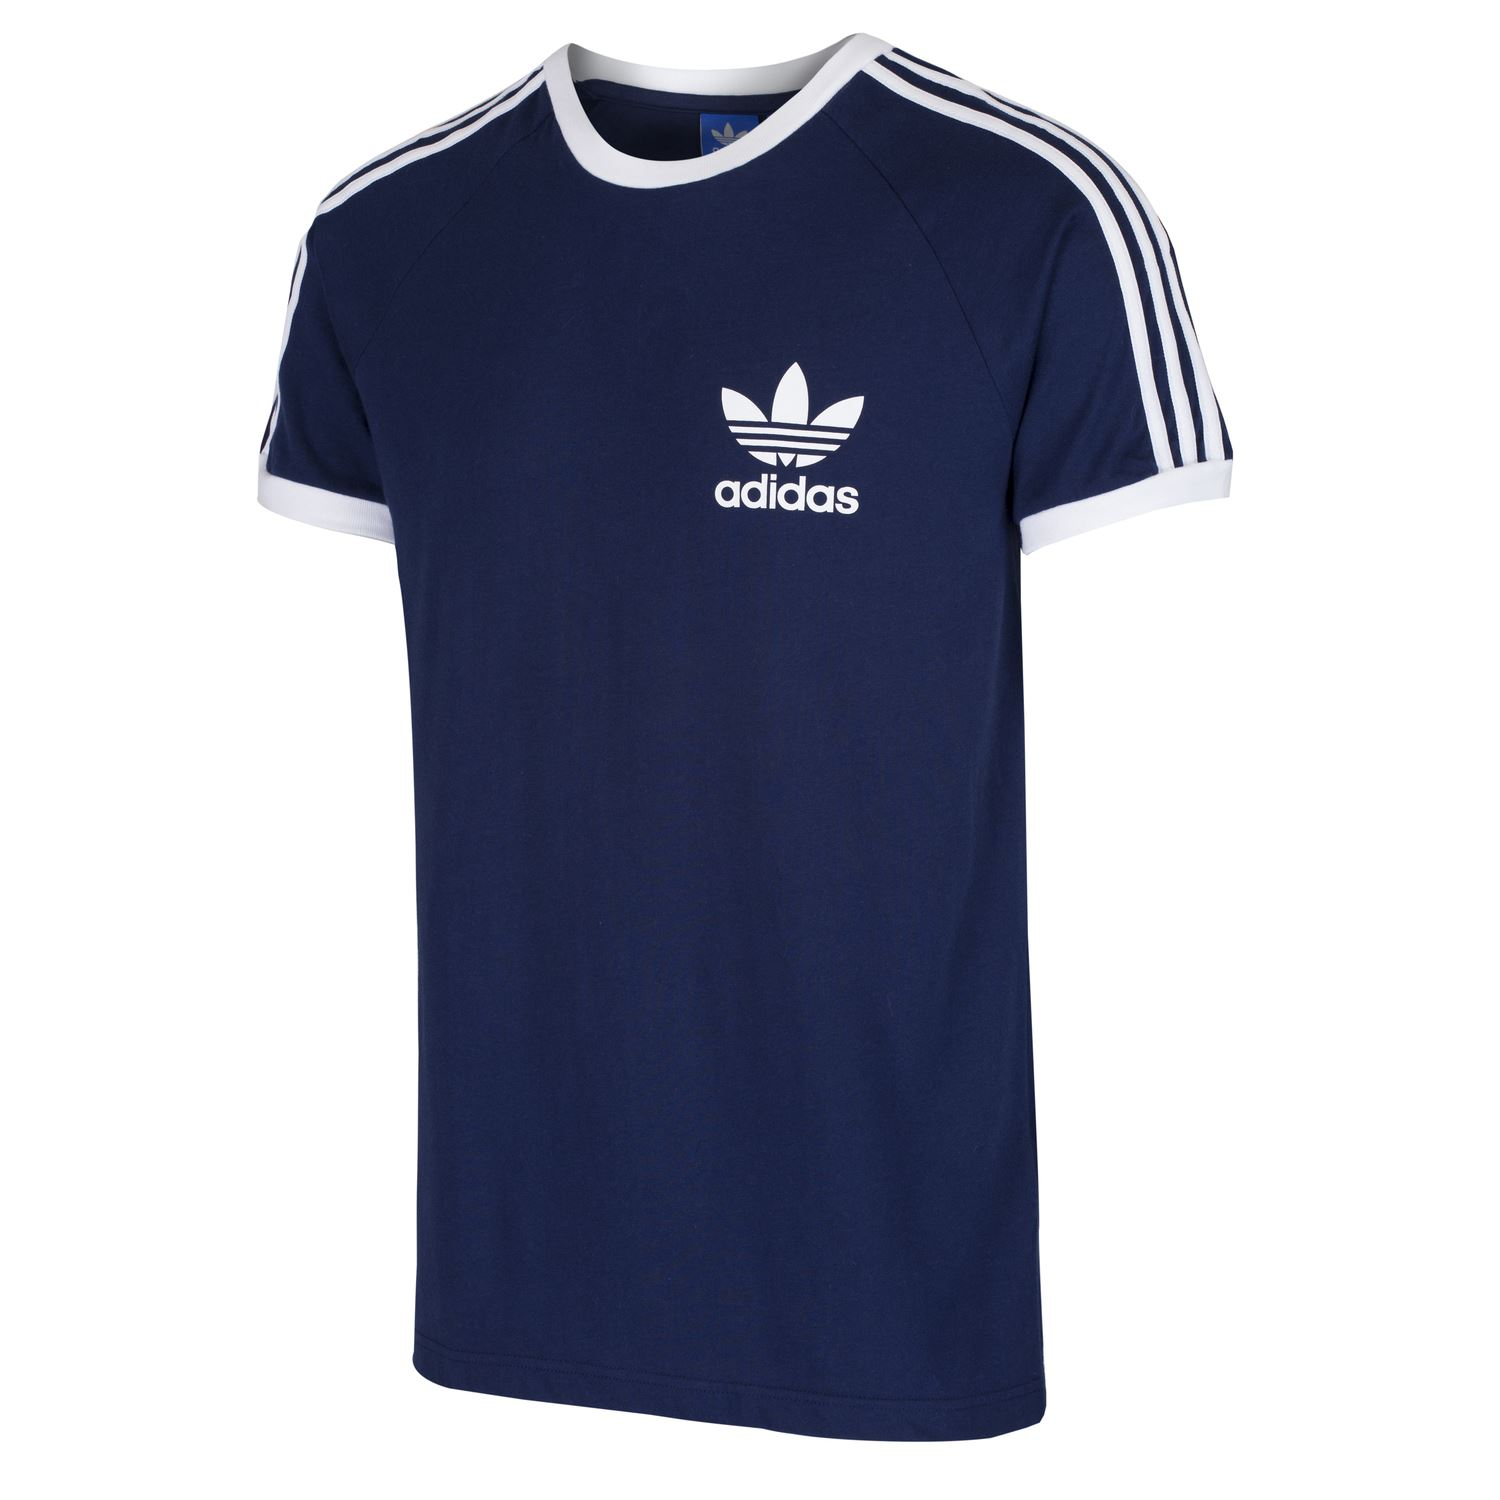 adidas originals california tee men 39 s white black navy red. Black Bedroom Furniture Sets. Home Design Ideas